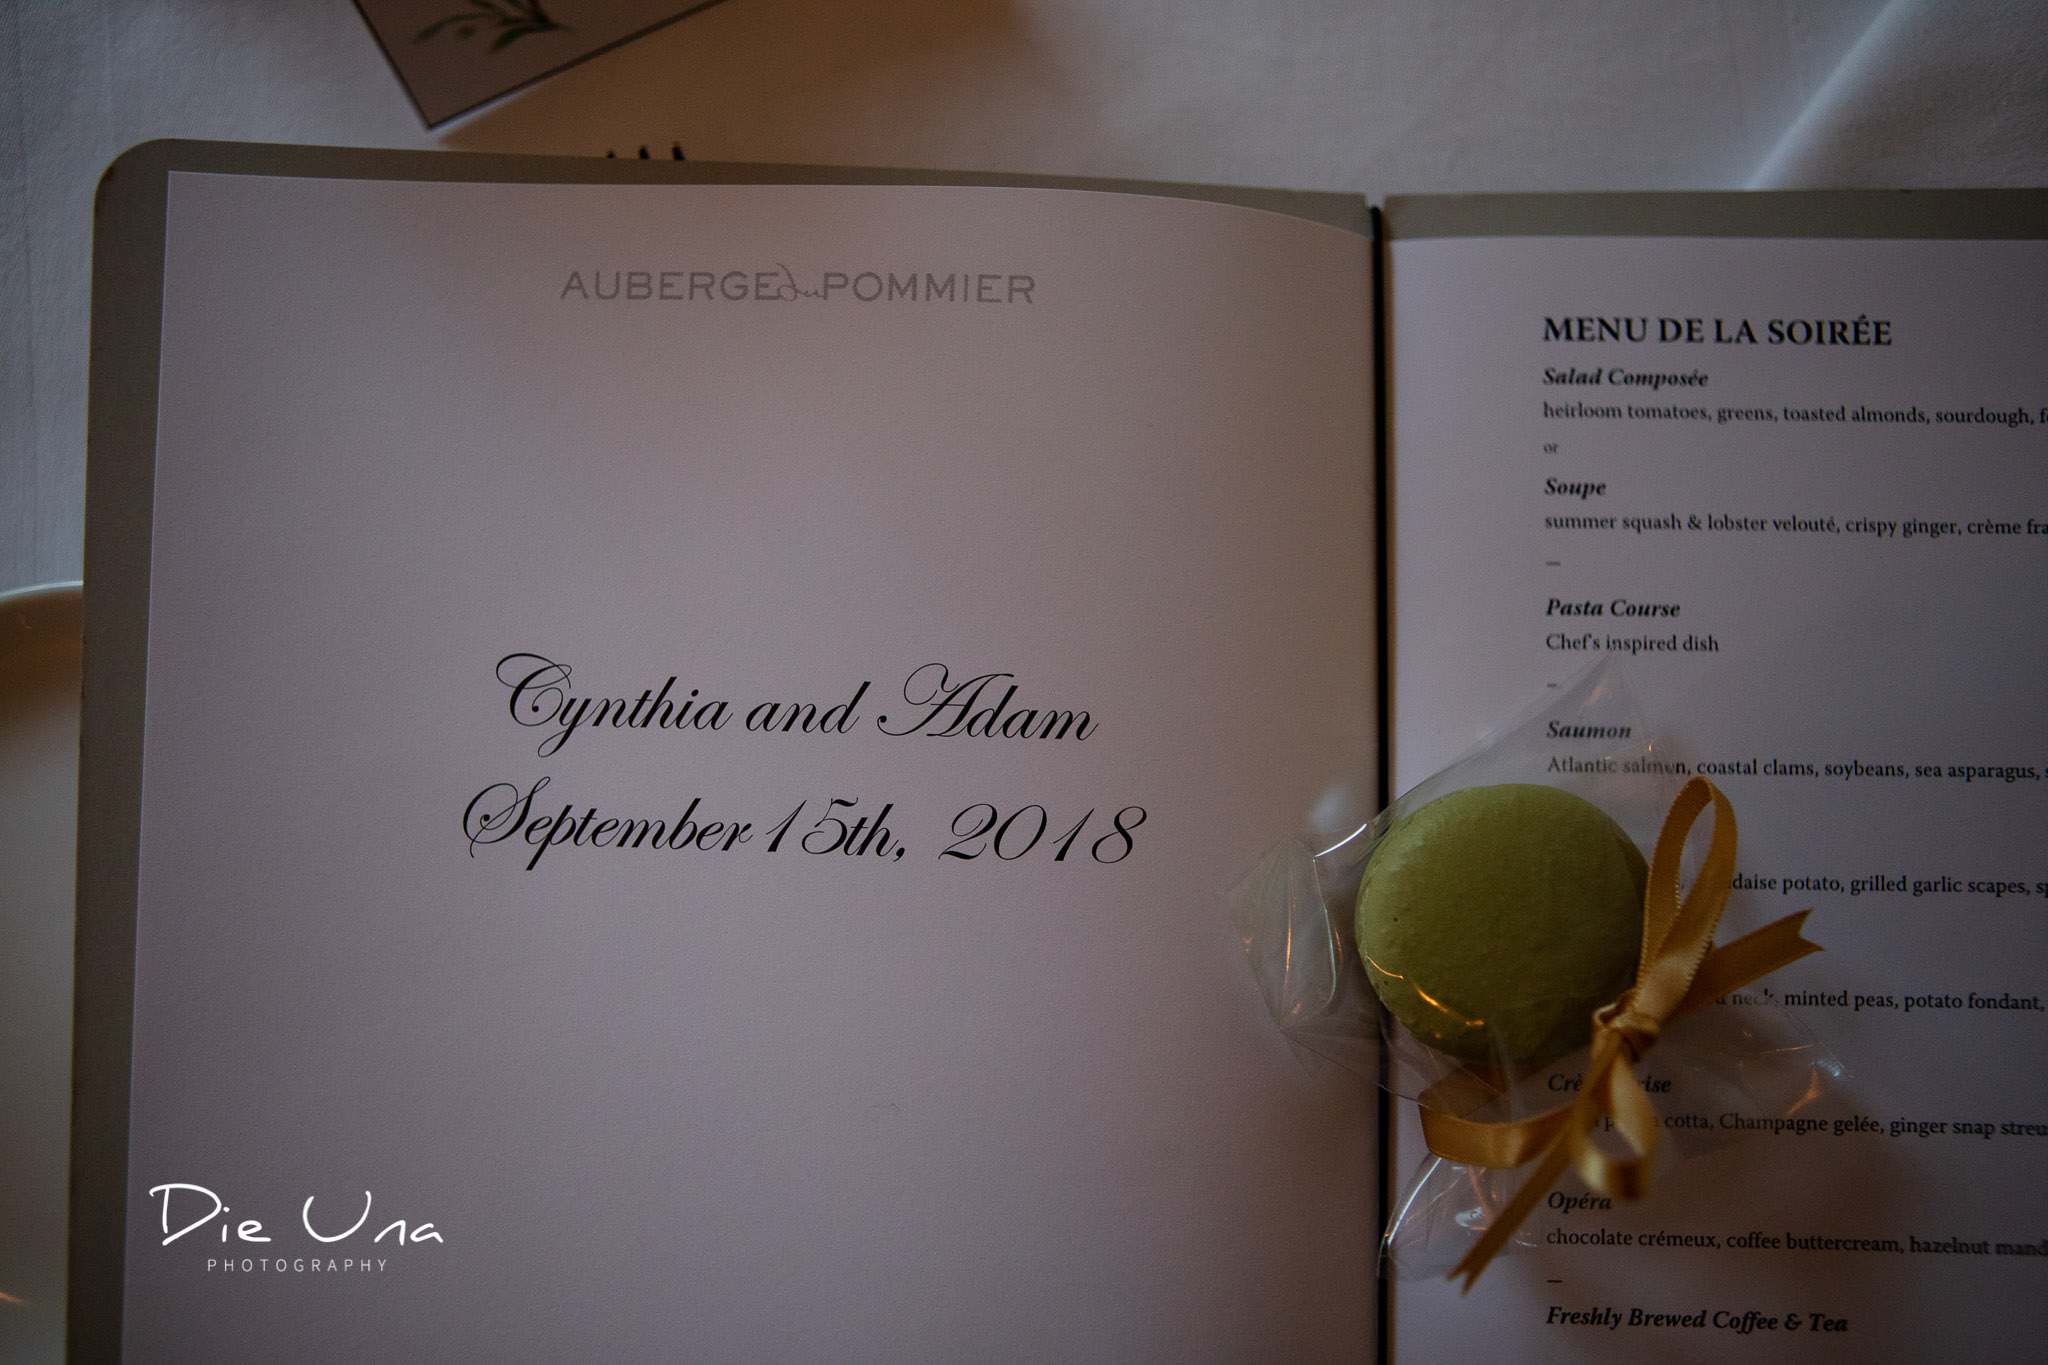 beautiful wedding dinner menu at Auberge du Pommier.jpg